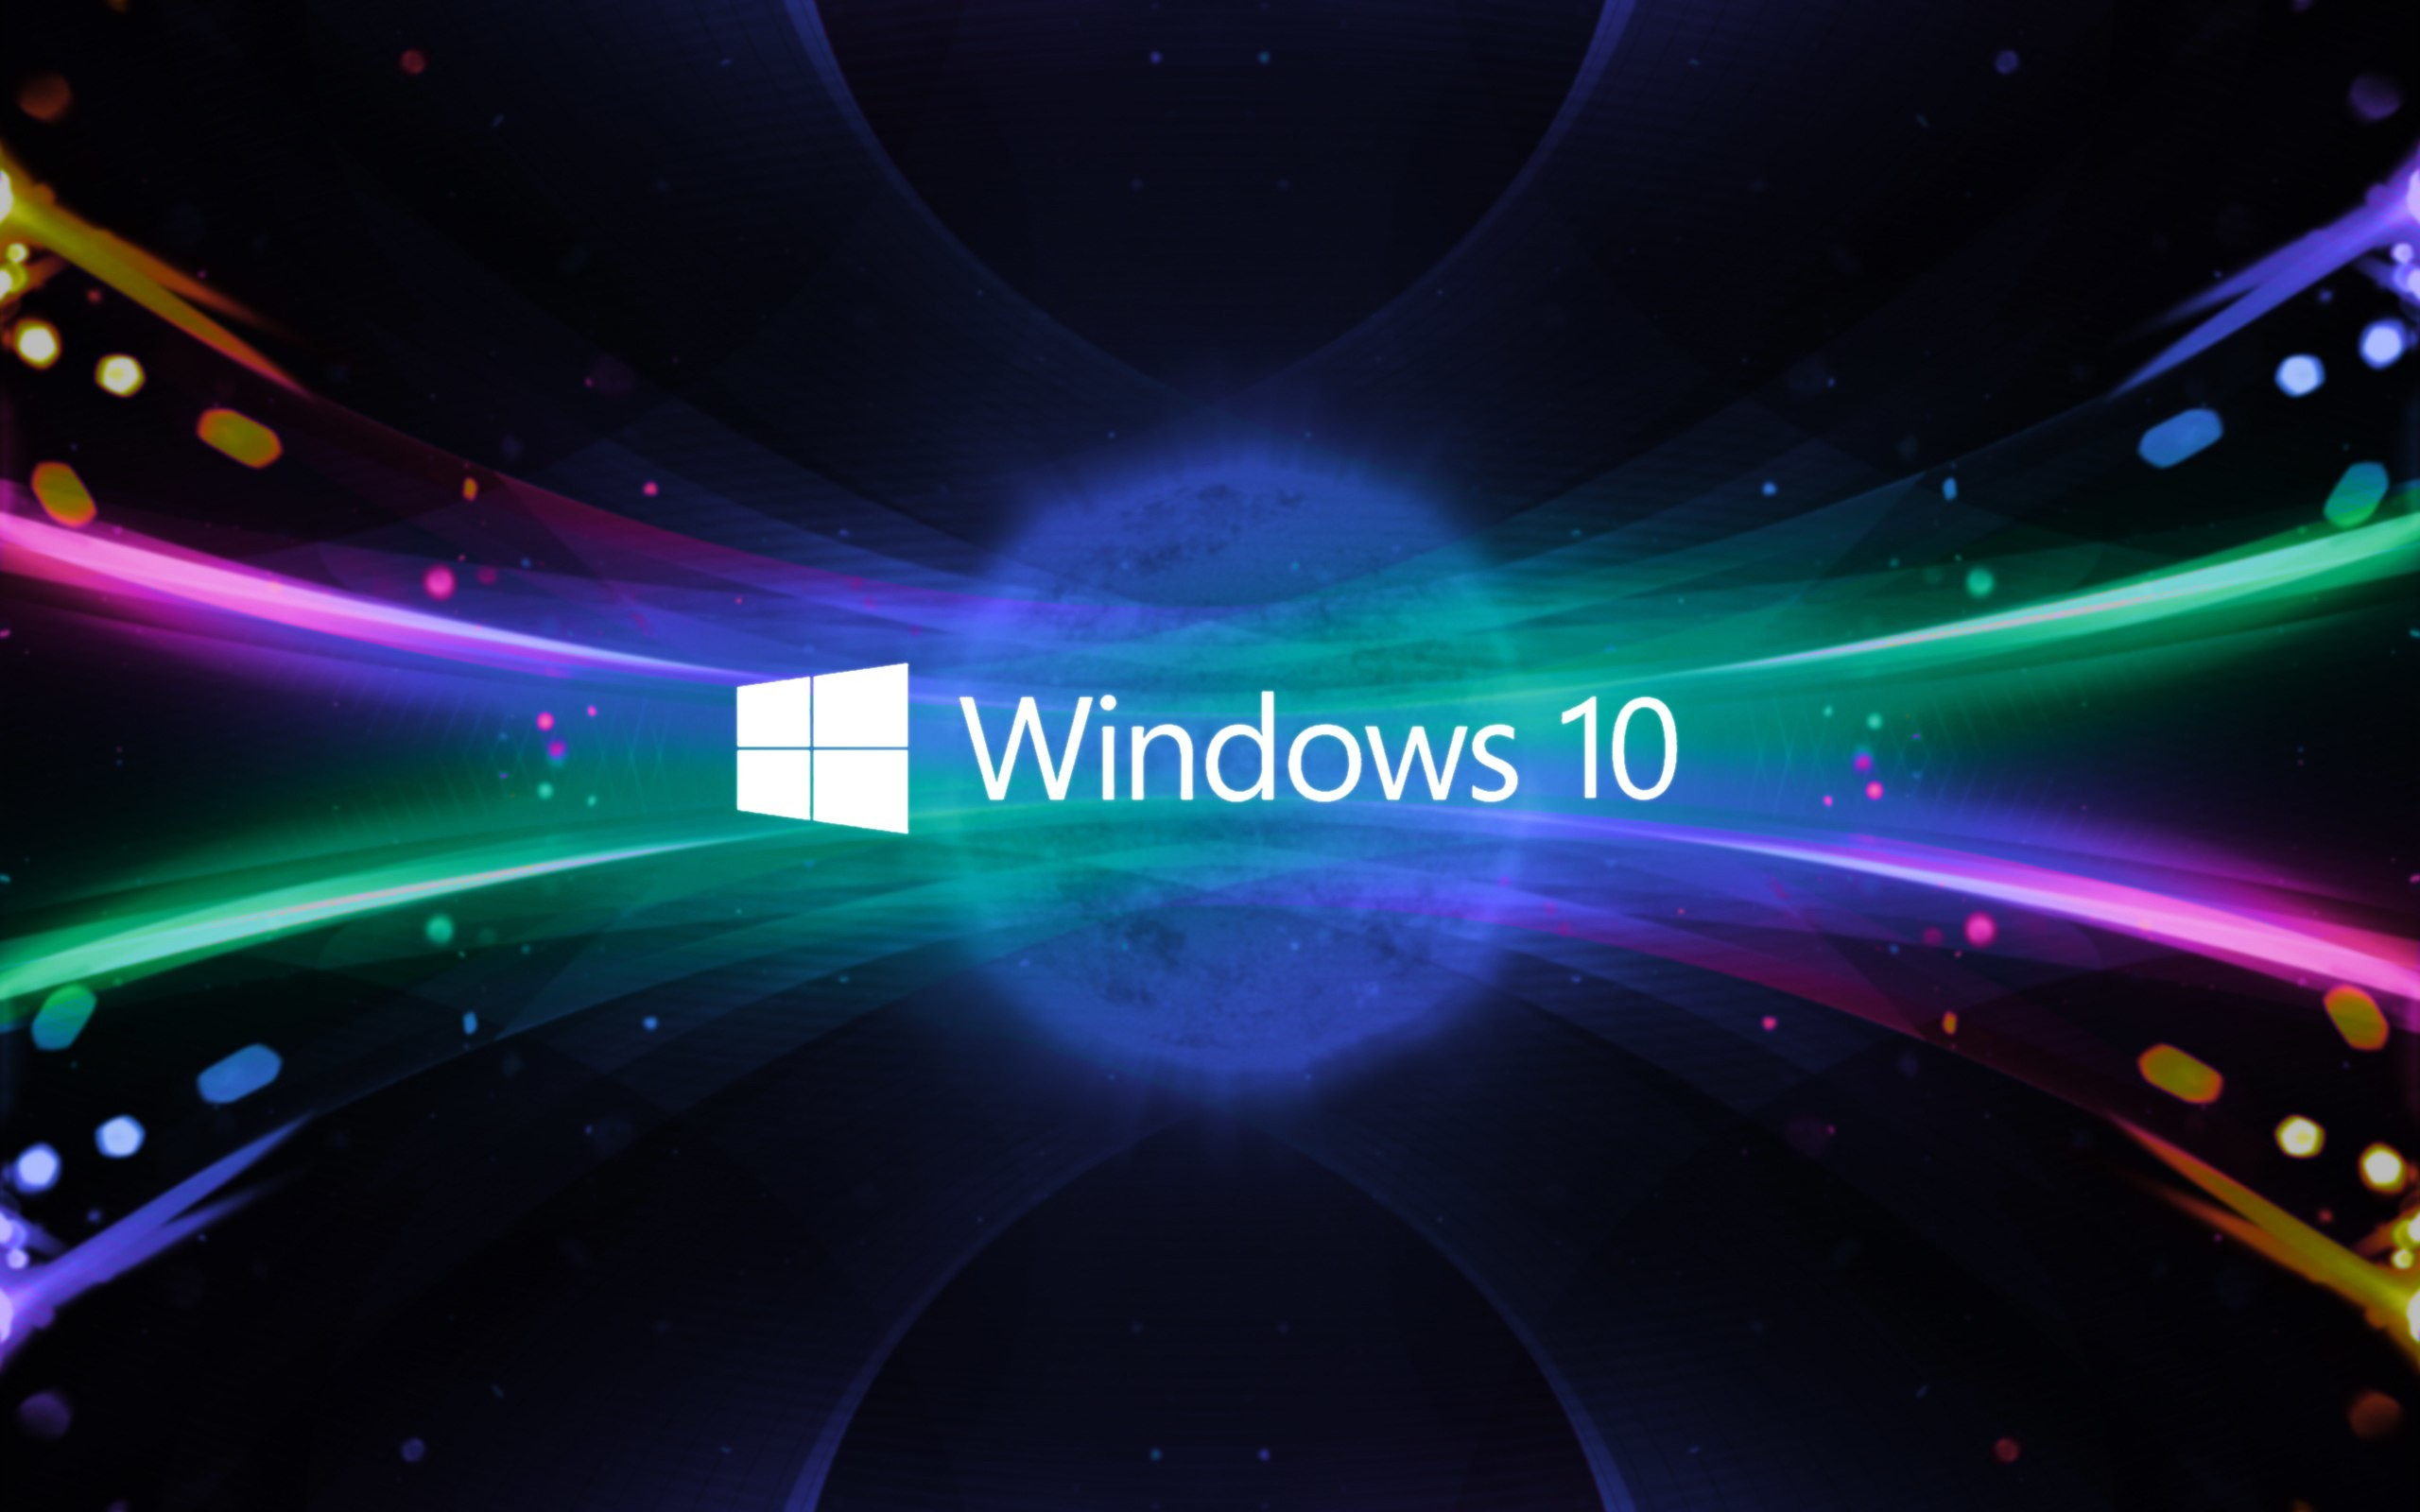 2560x1600 Top Windows 10 Wallpapers - Space